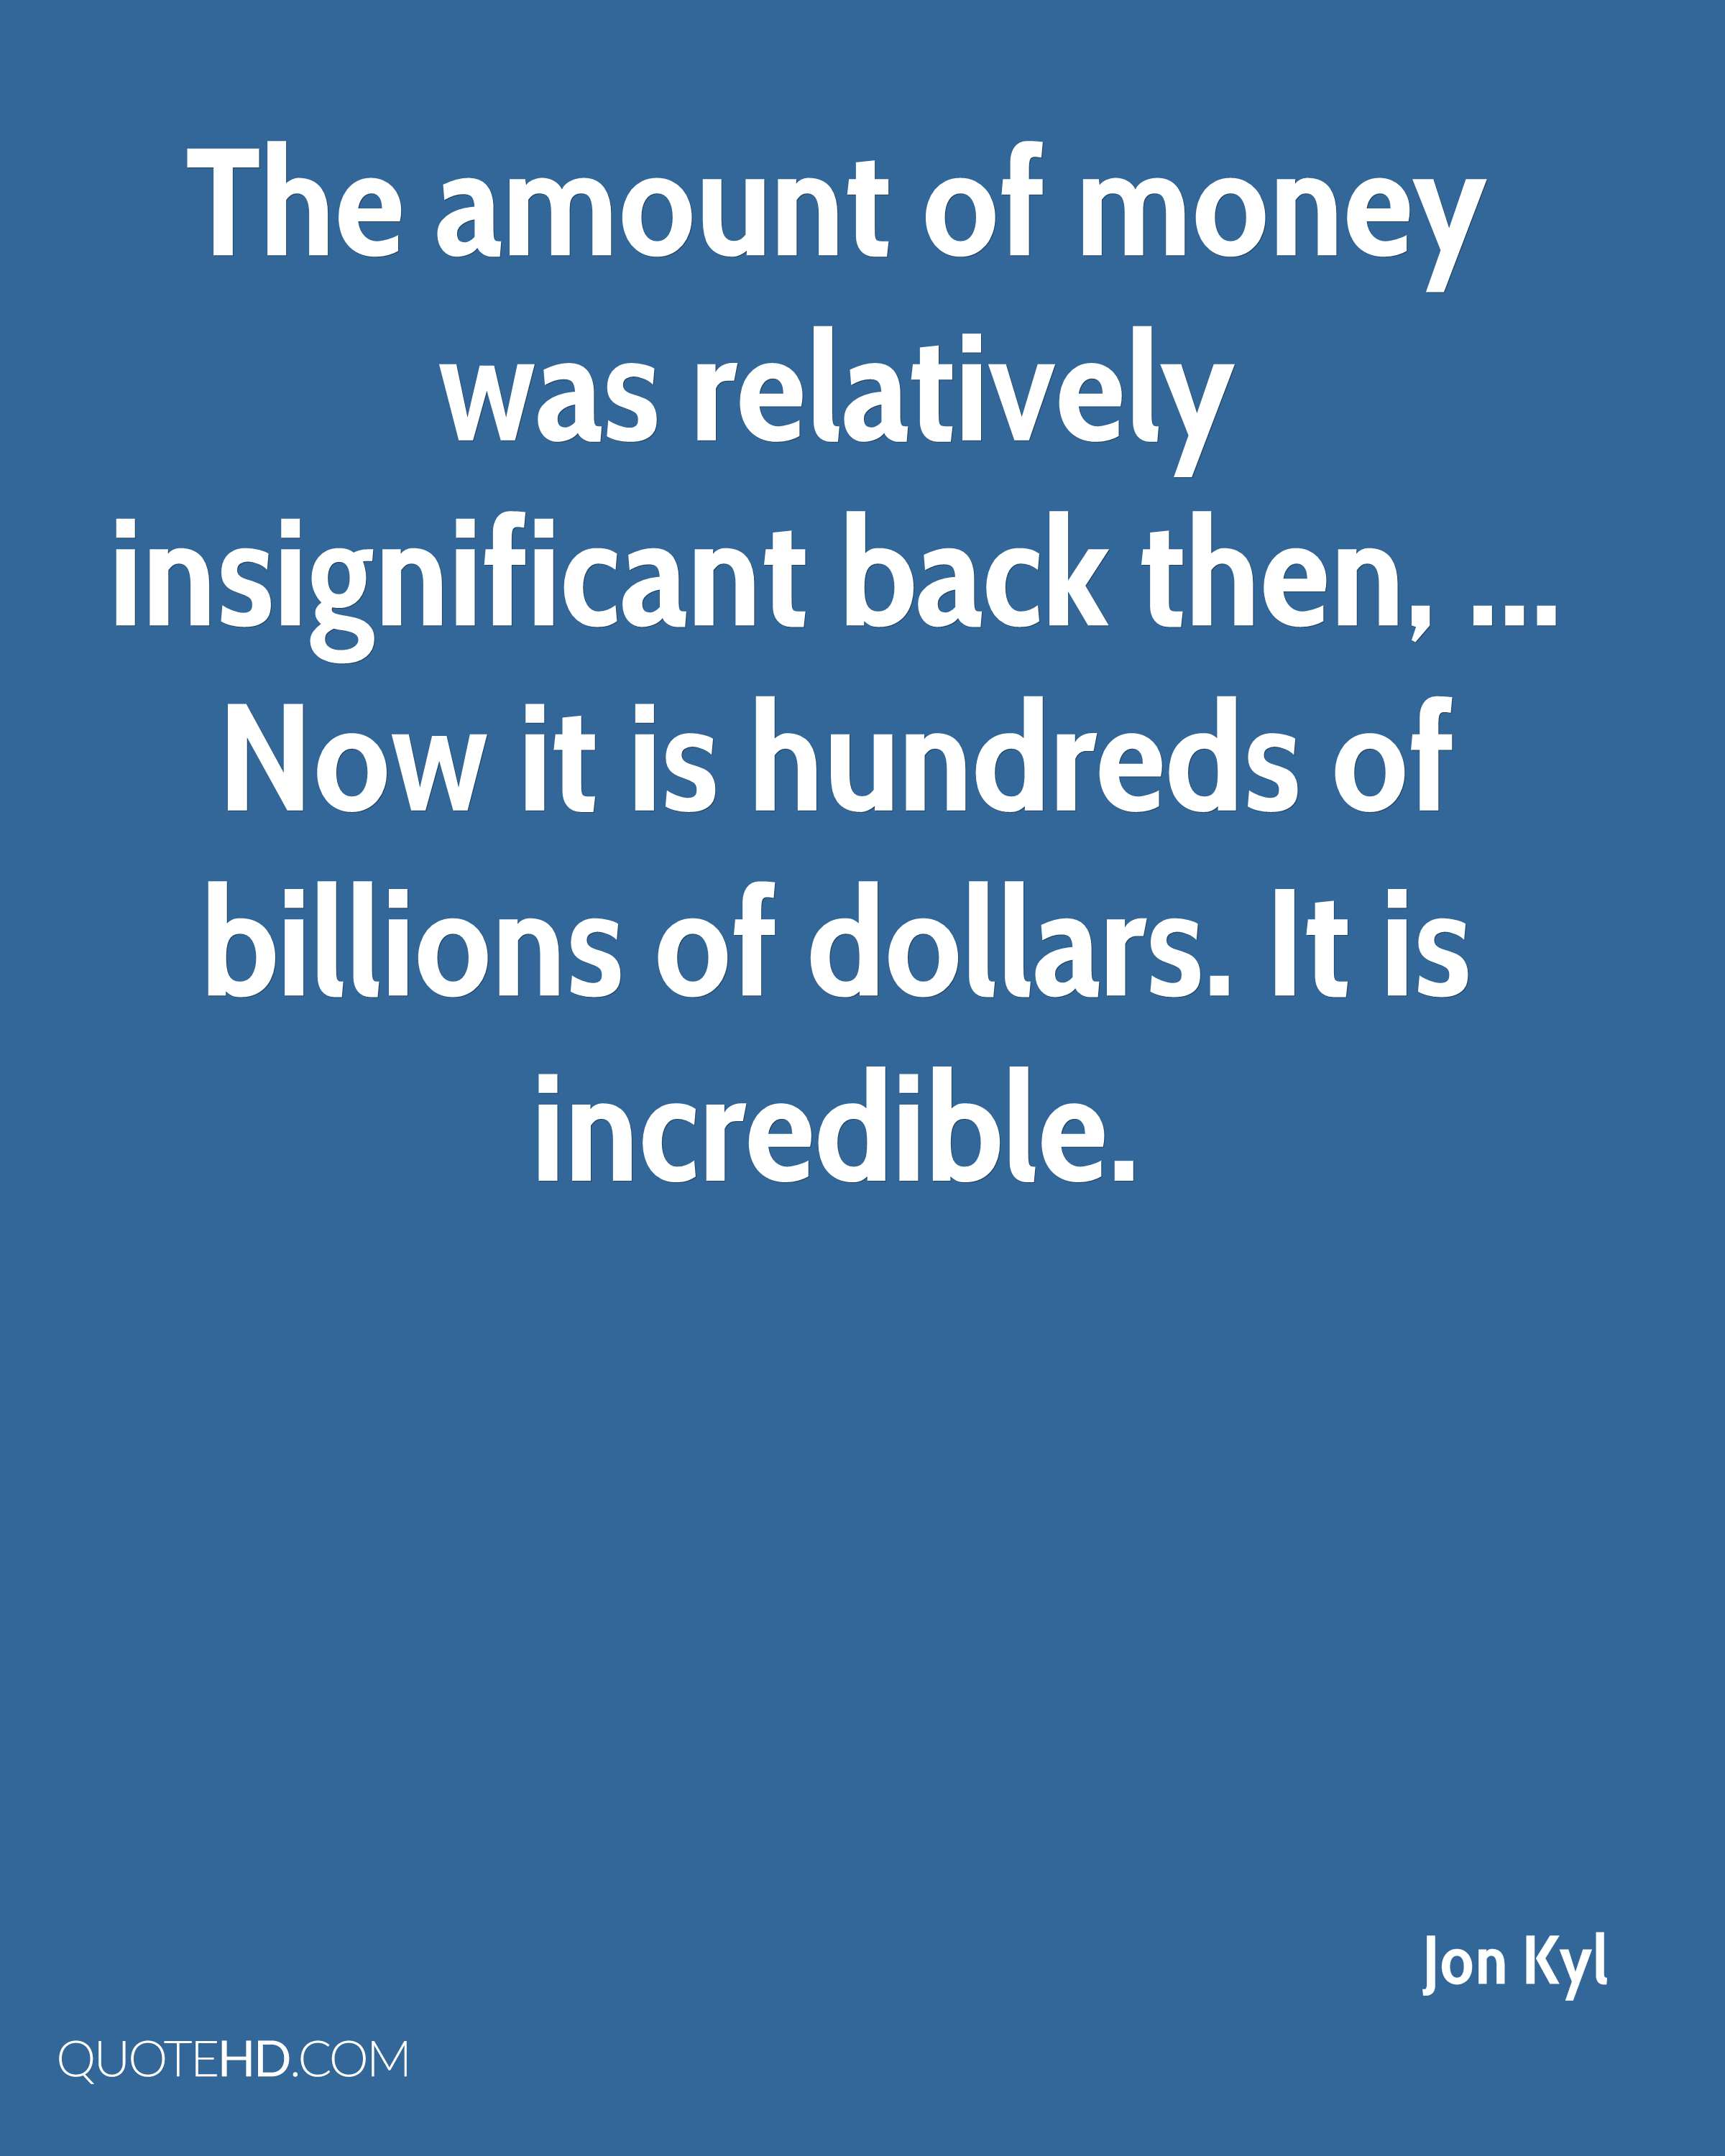 The amount of money was relatively insignificant back then, ... Now it is hundreds of billions of dollars. It is incredible.